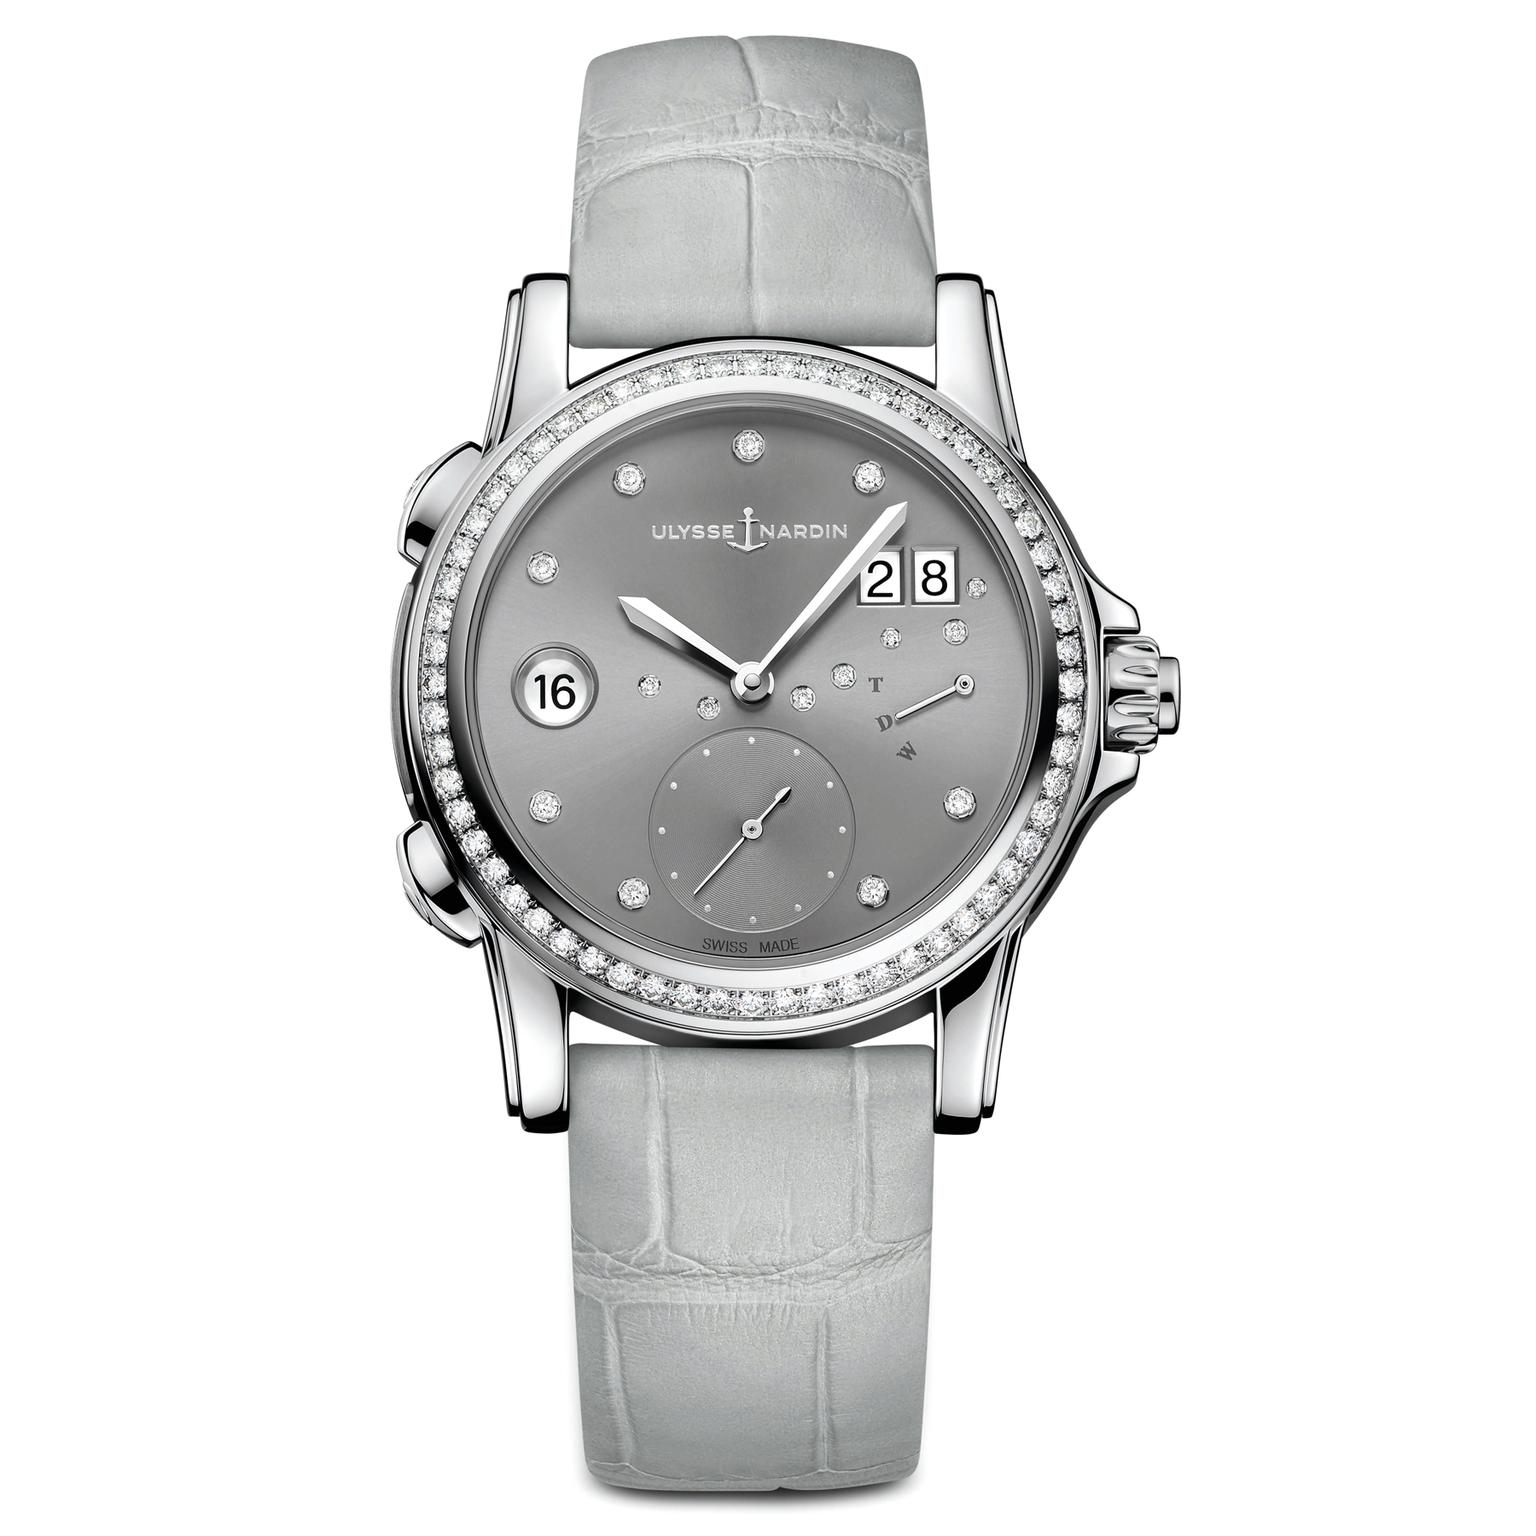 Ulysse Nardin Classic Lady Dual Time watch silver dial